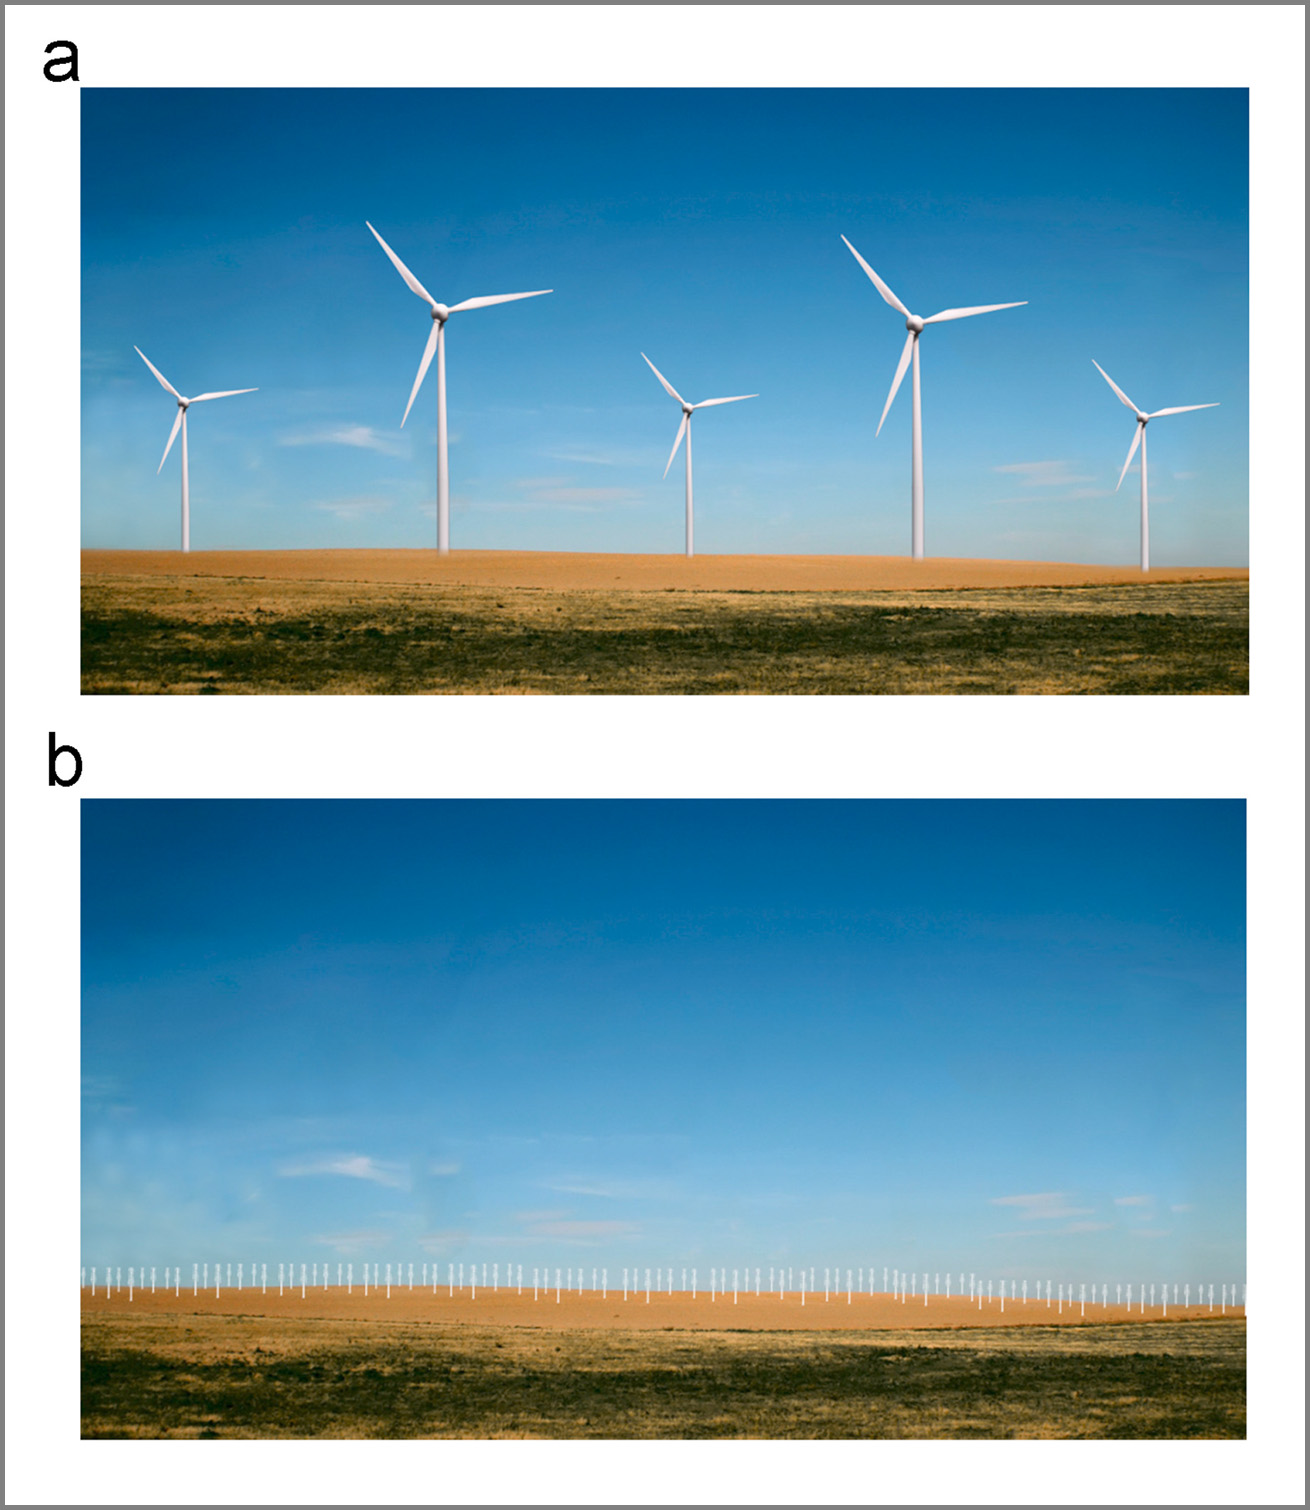 traditional versus horizontal axis wind turbines in open space setting